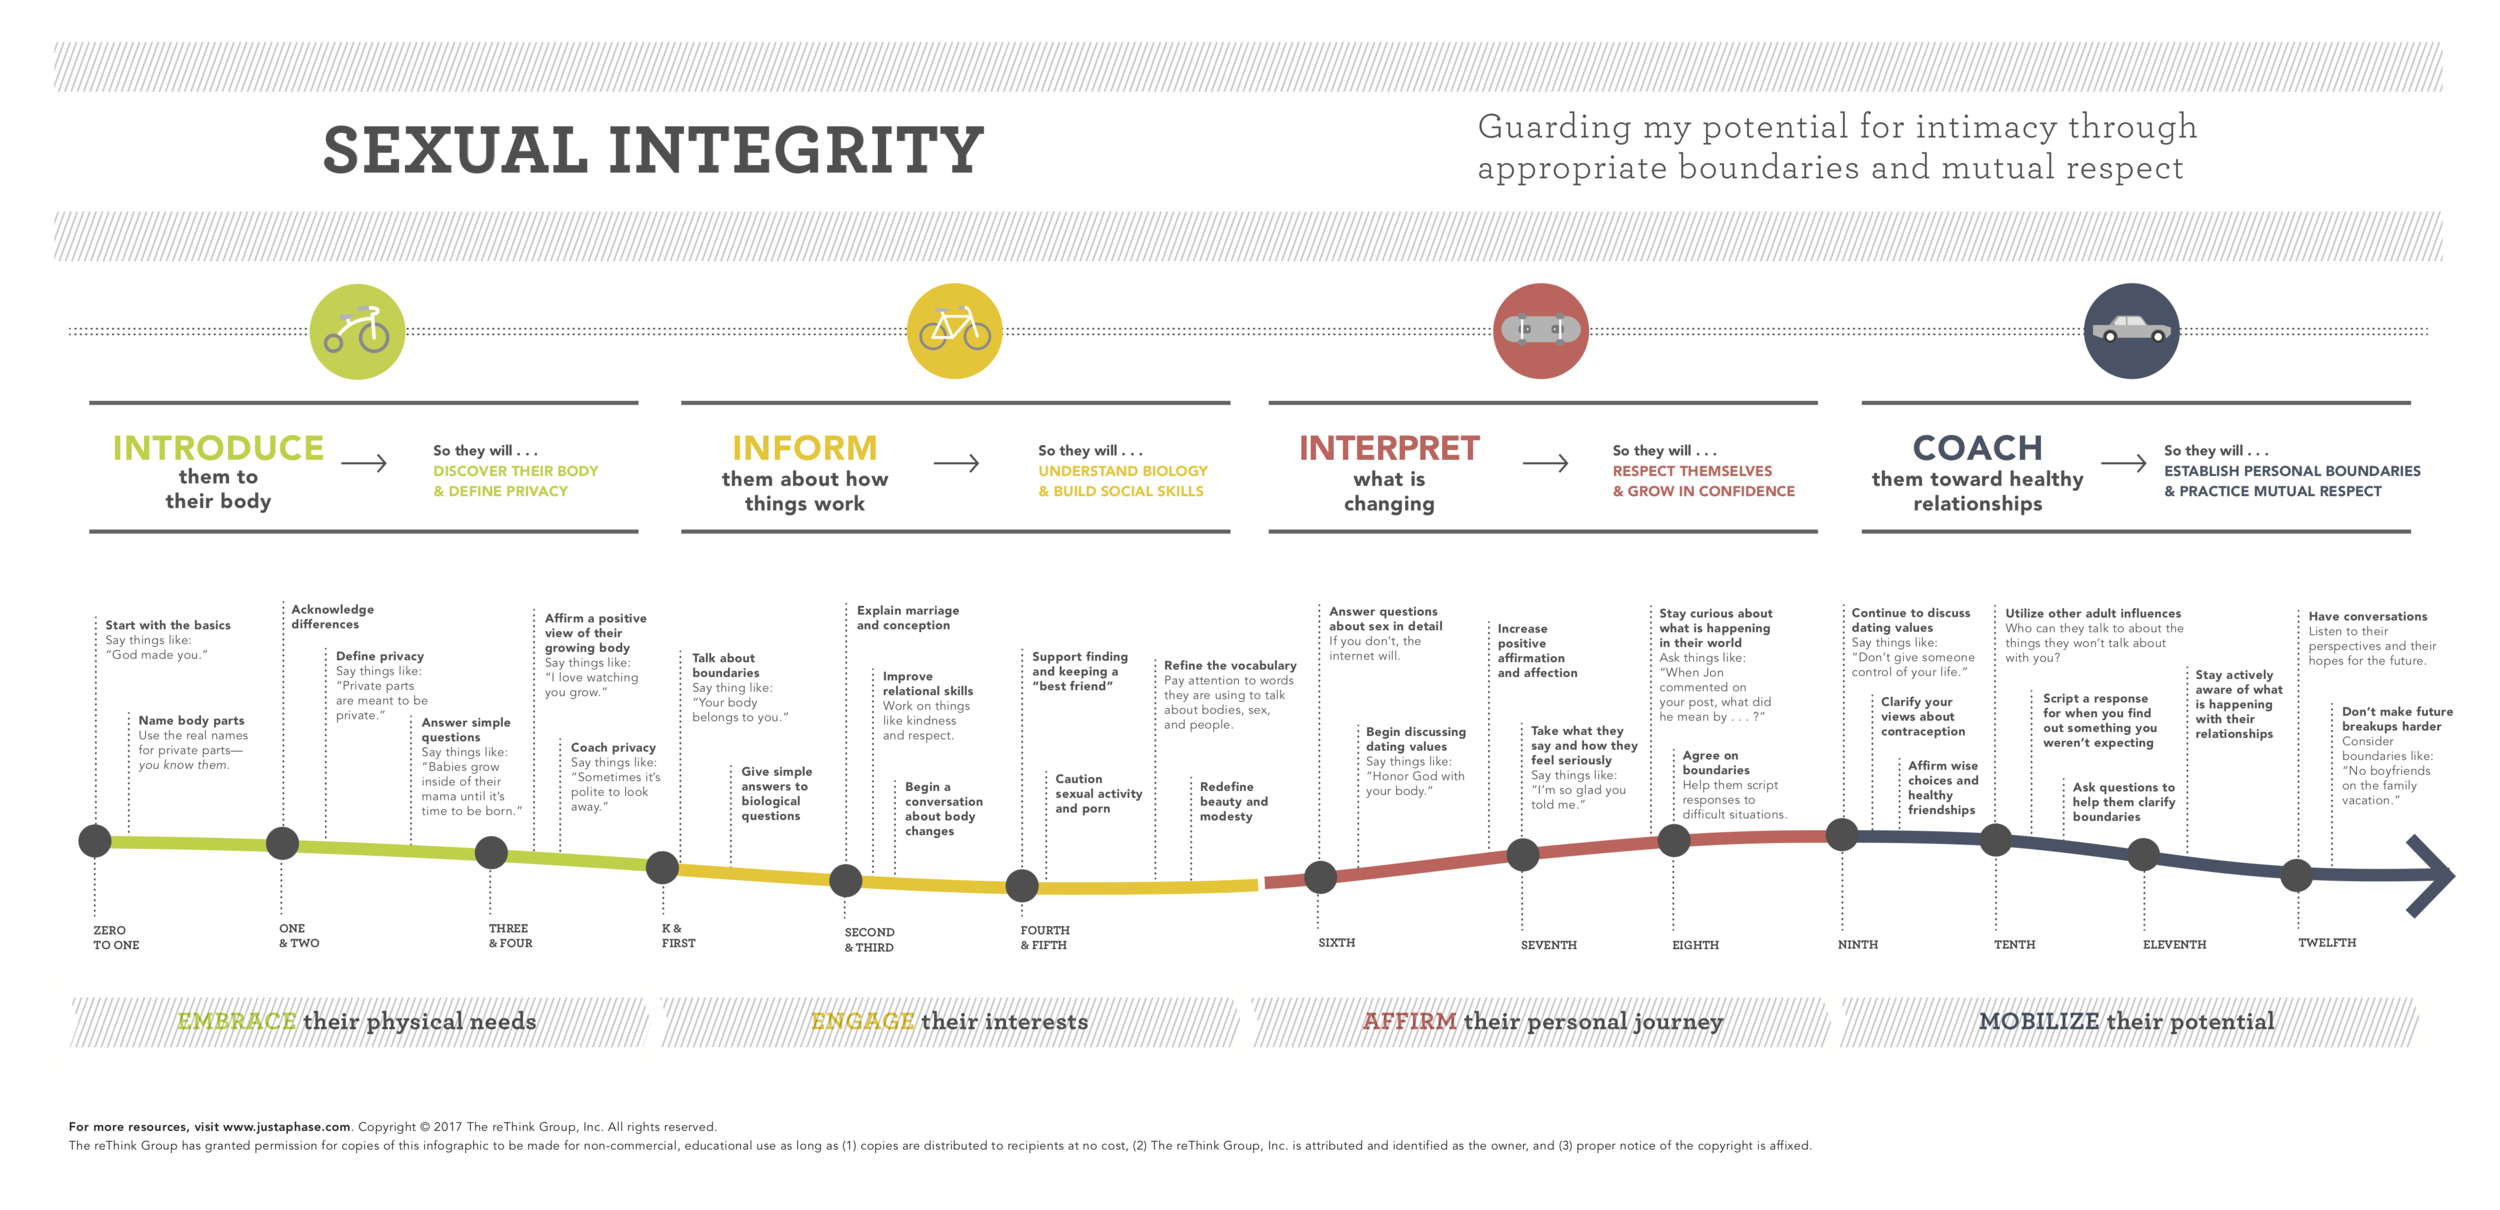 PhaseProject_SexualIntegrity_Timeline-cropped.png